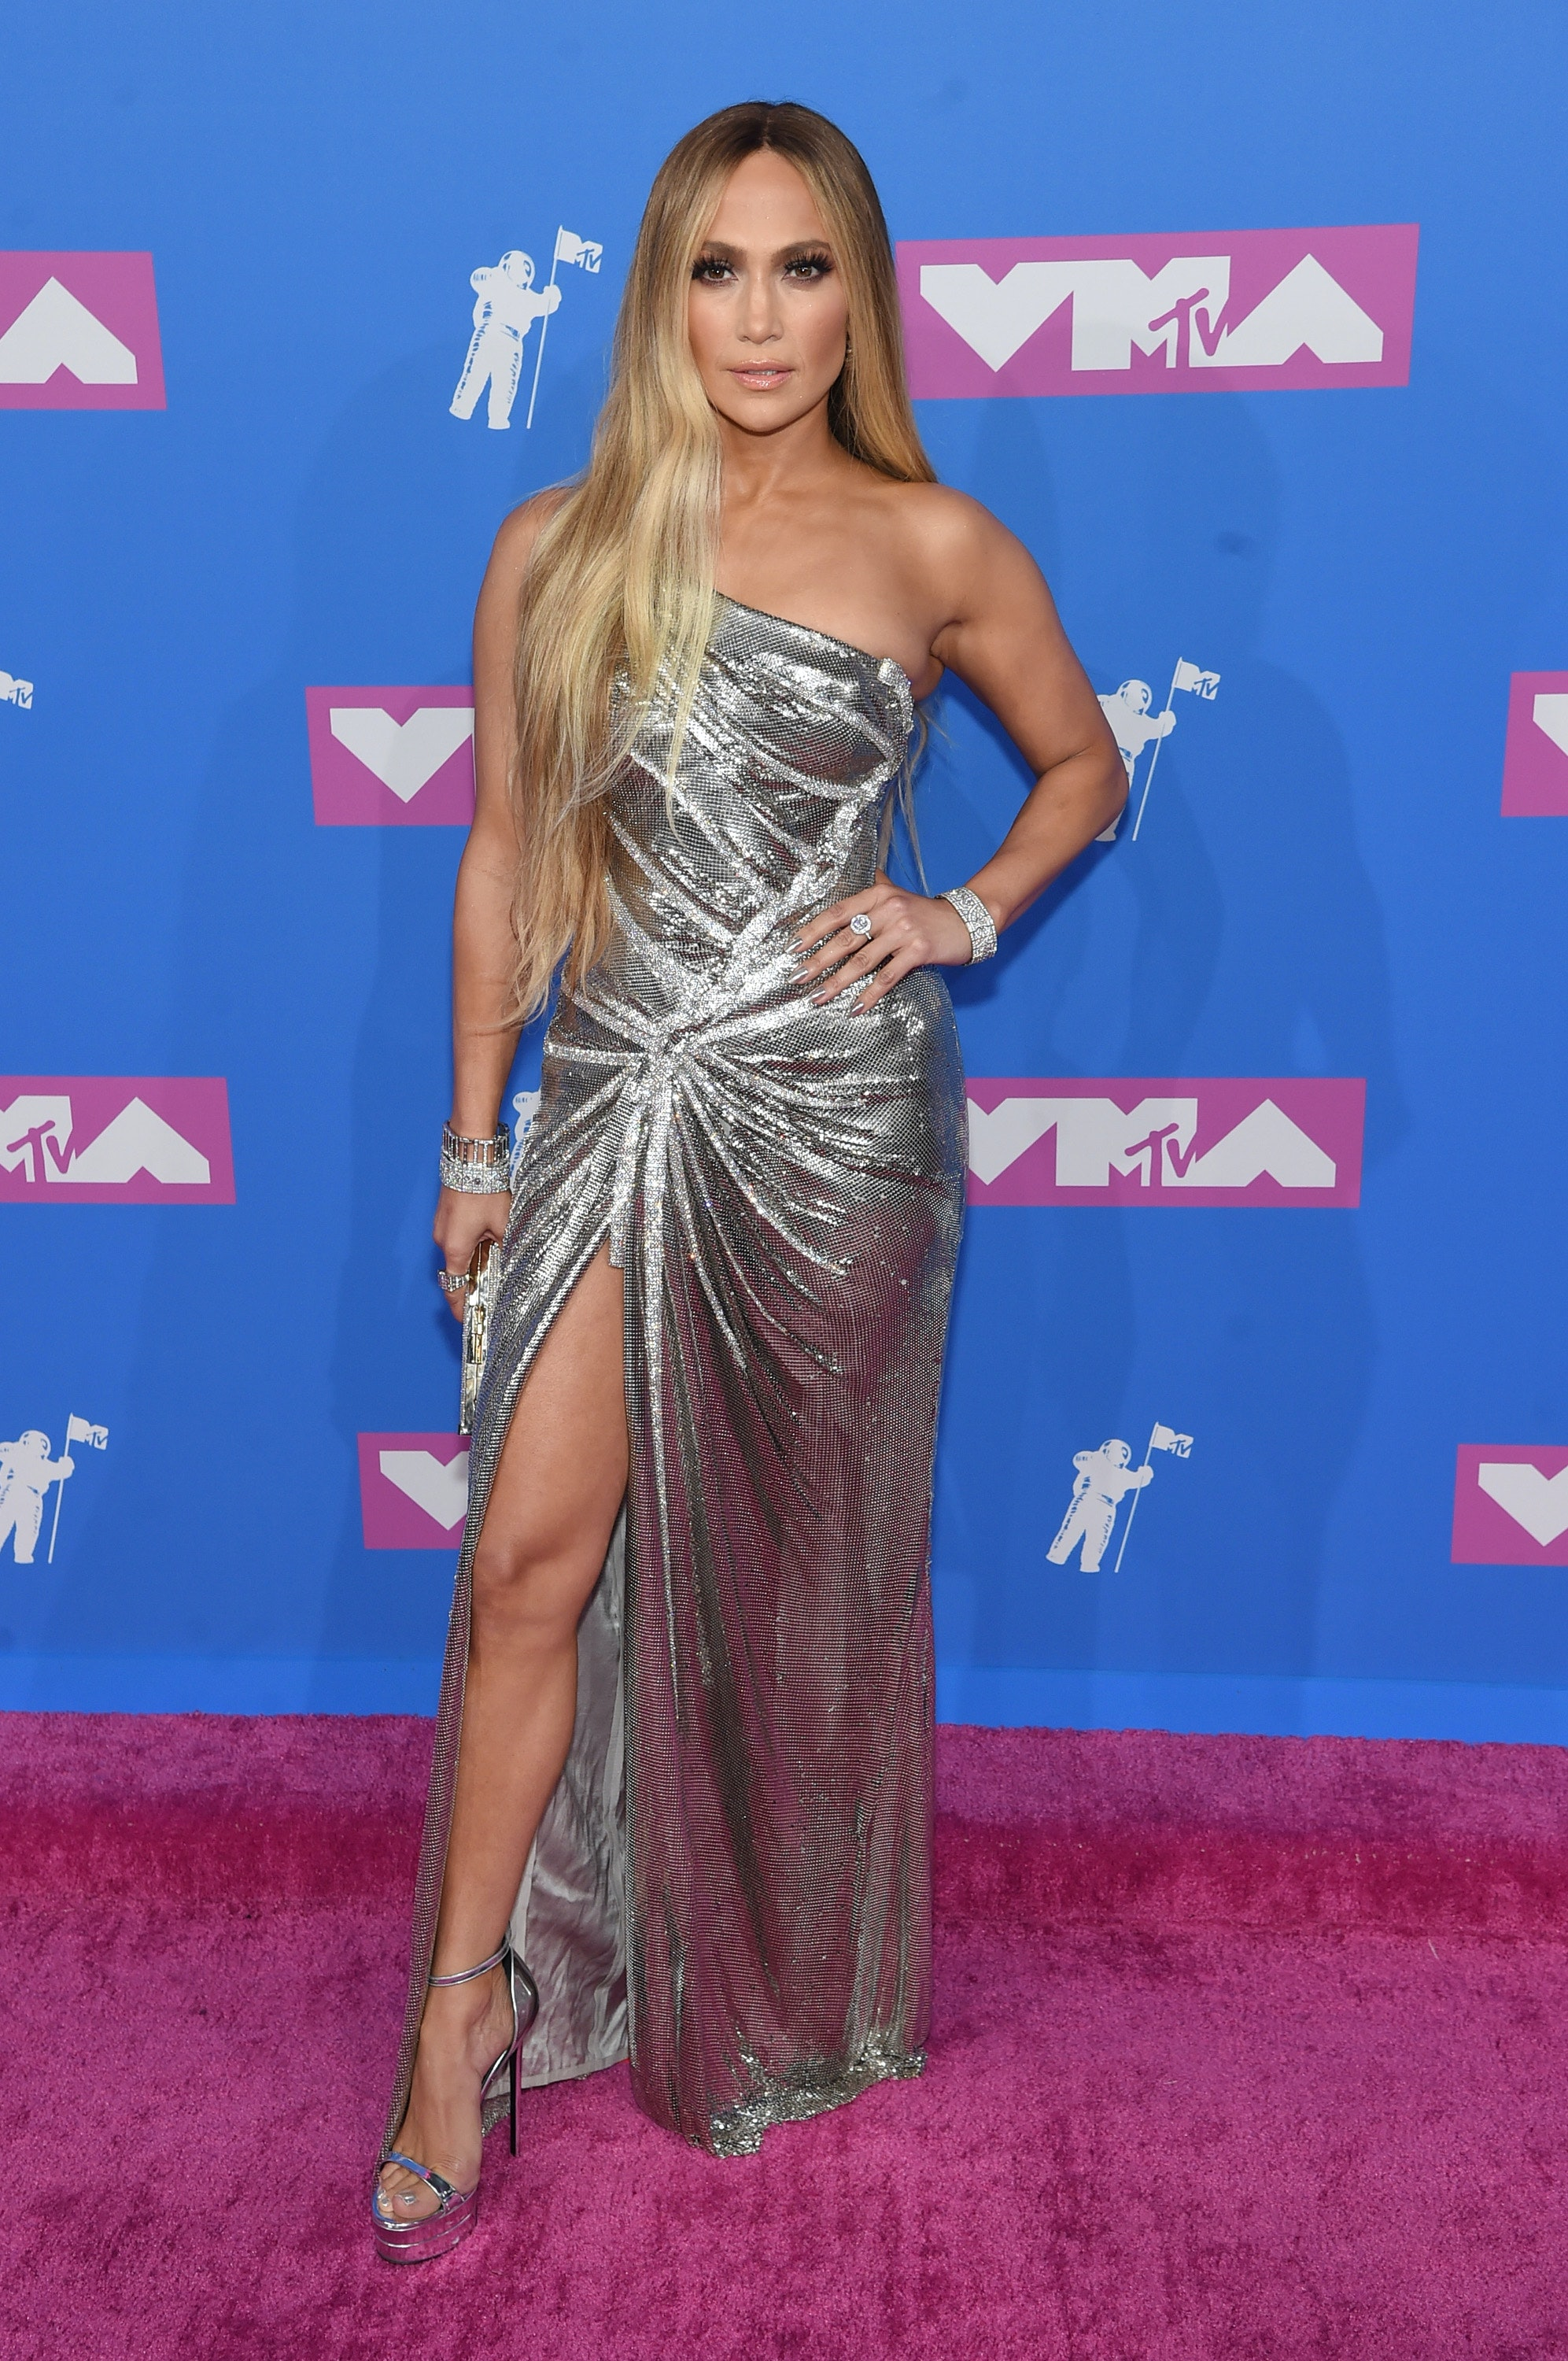 741715d9dedd6 All The 2018 VMAs Looks Will Make You All Kinds Of Starry-Eyed